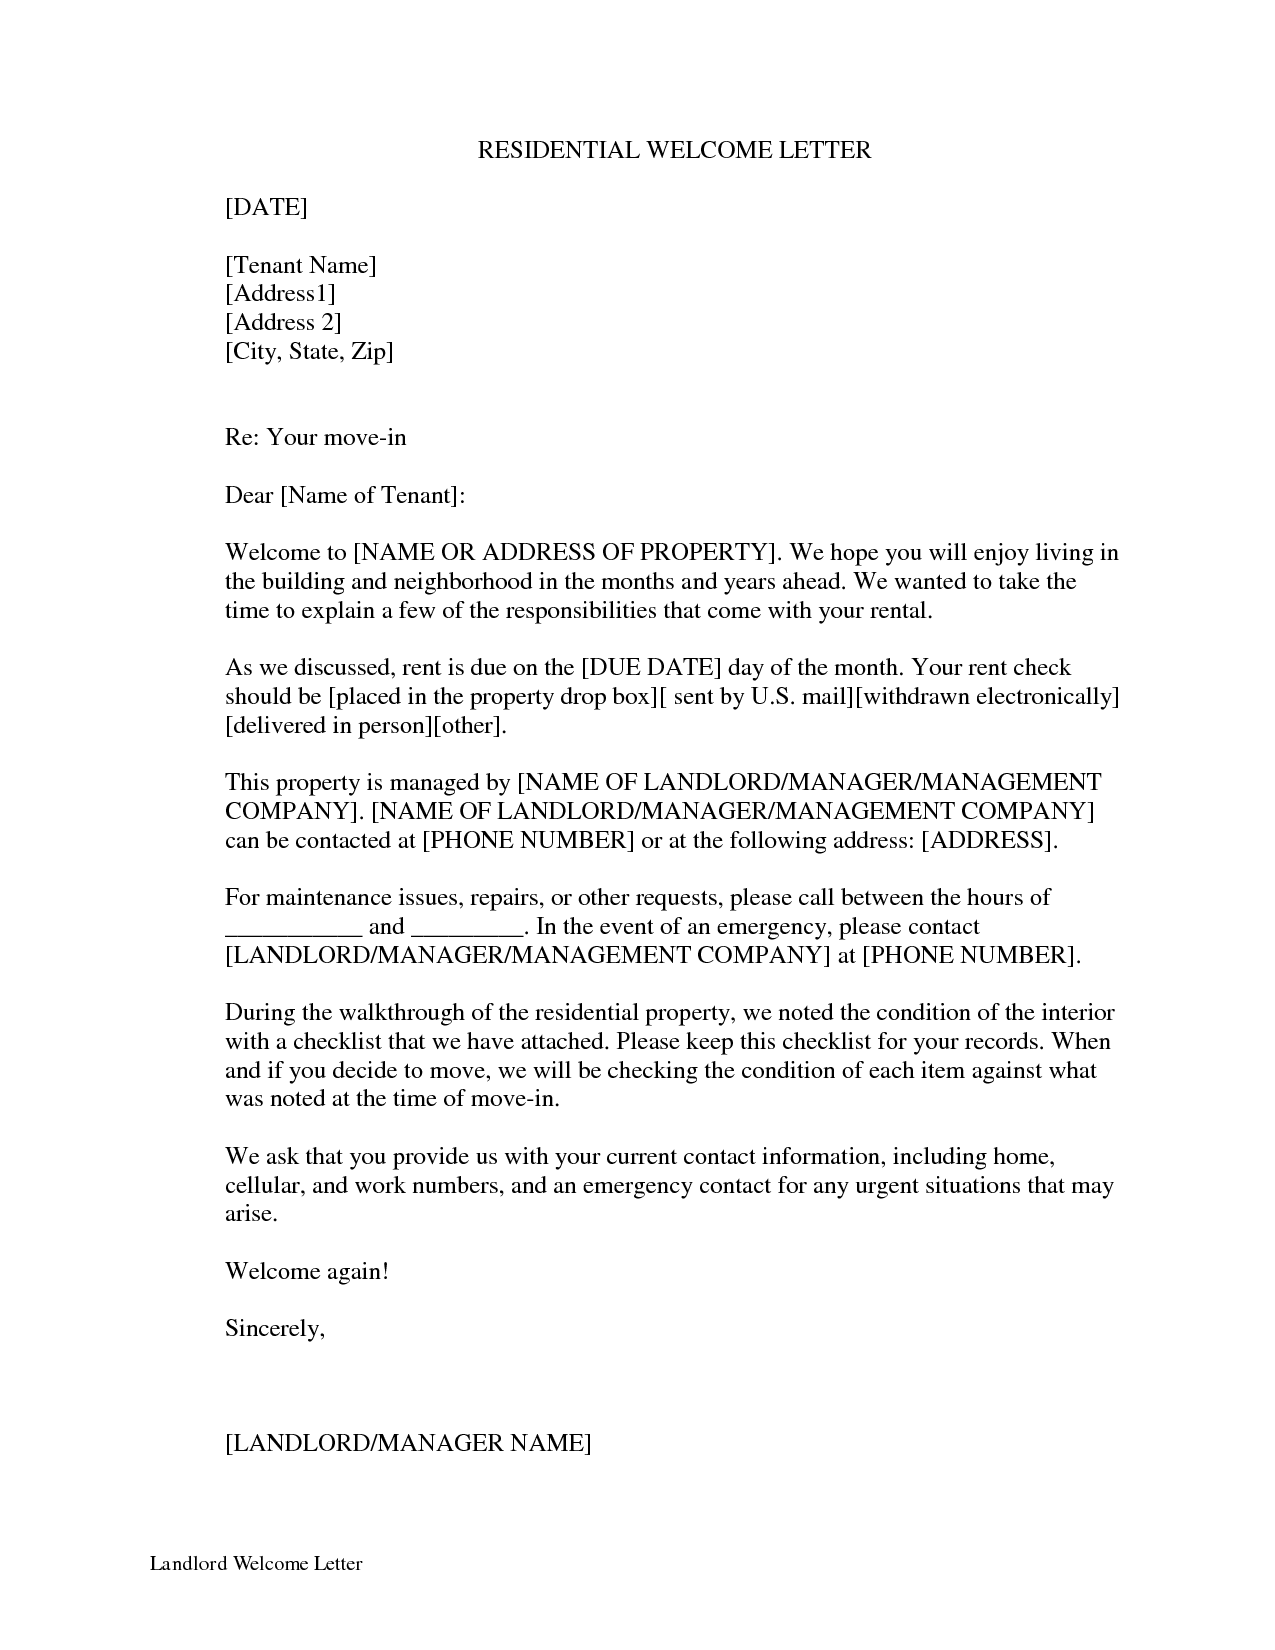 Letter Sample letters with mustknow